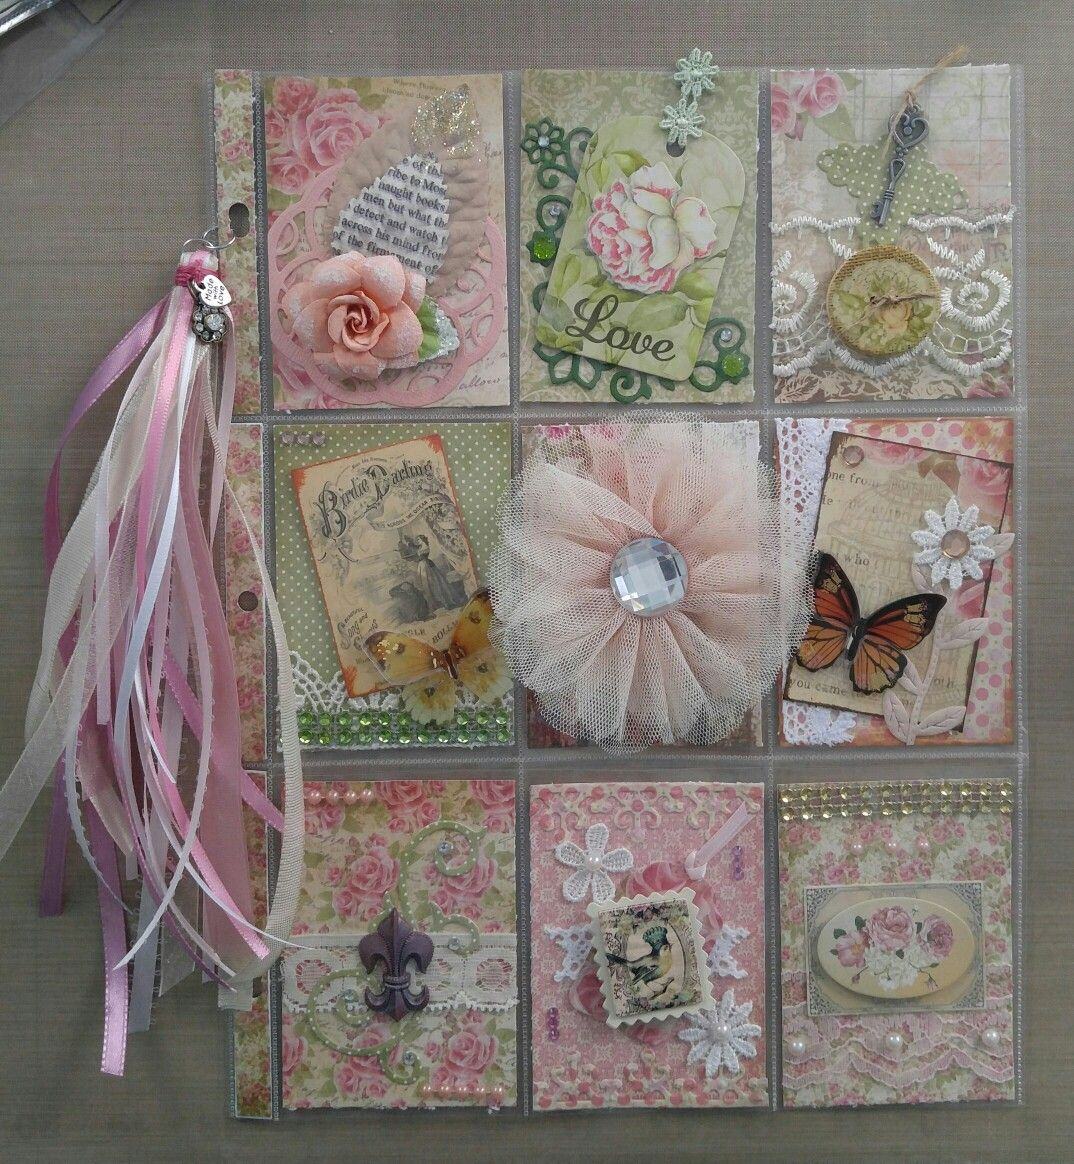 #31 Vinrage shabby pocket letter using Our Daily Bread paper, for Angela F. In GA.